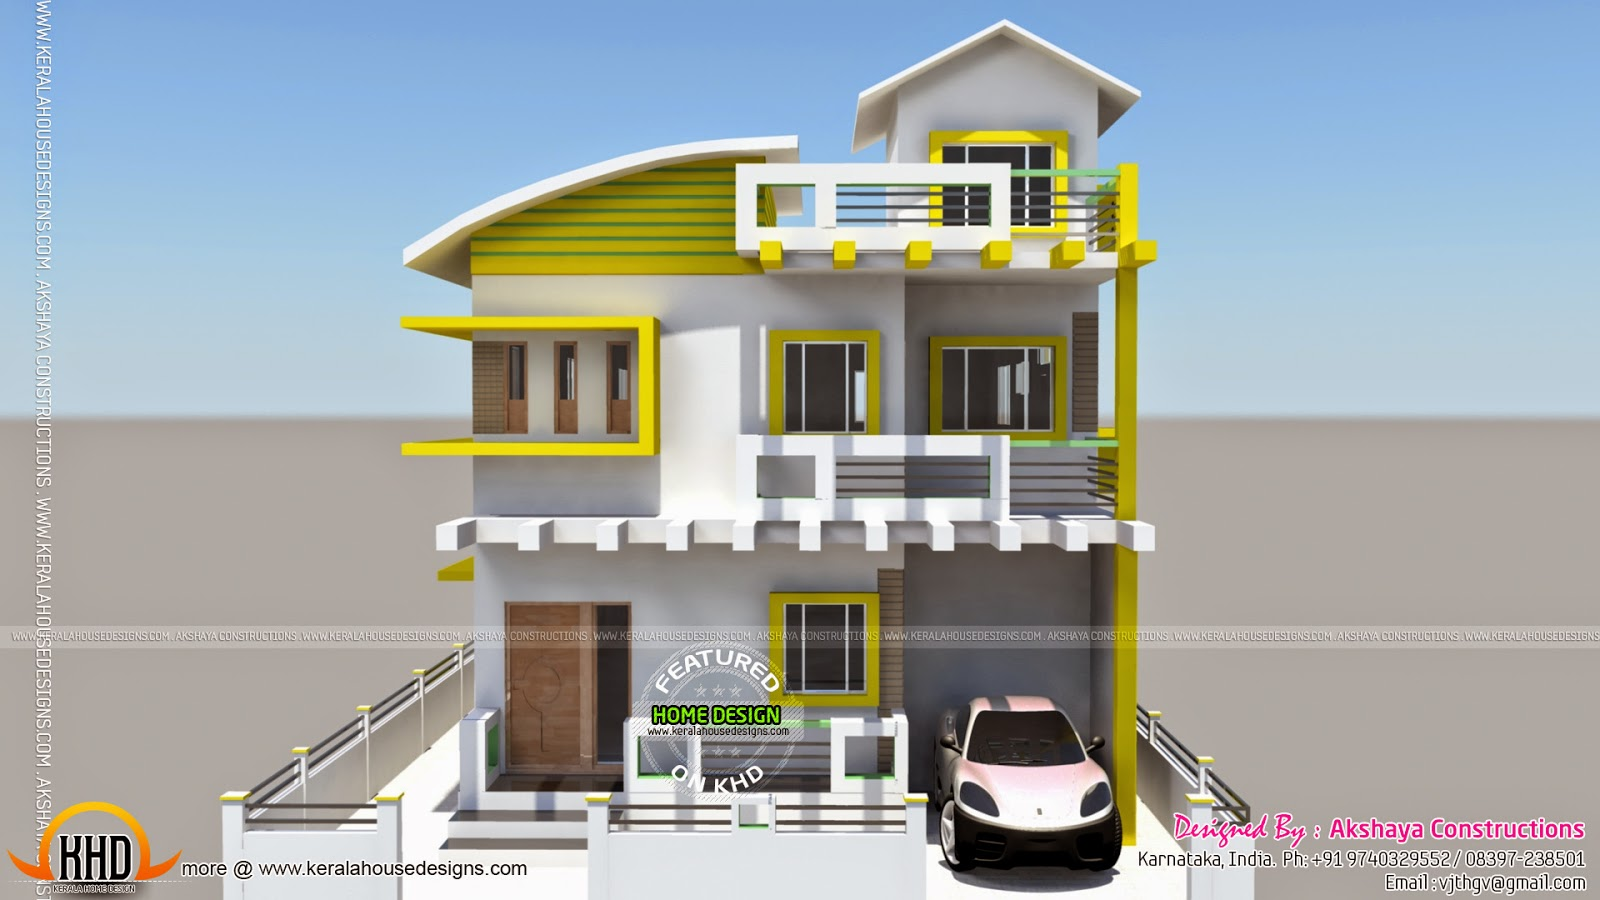 Karnataka home design kerala home design and floor plans for Www homedesign com